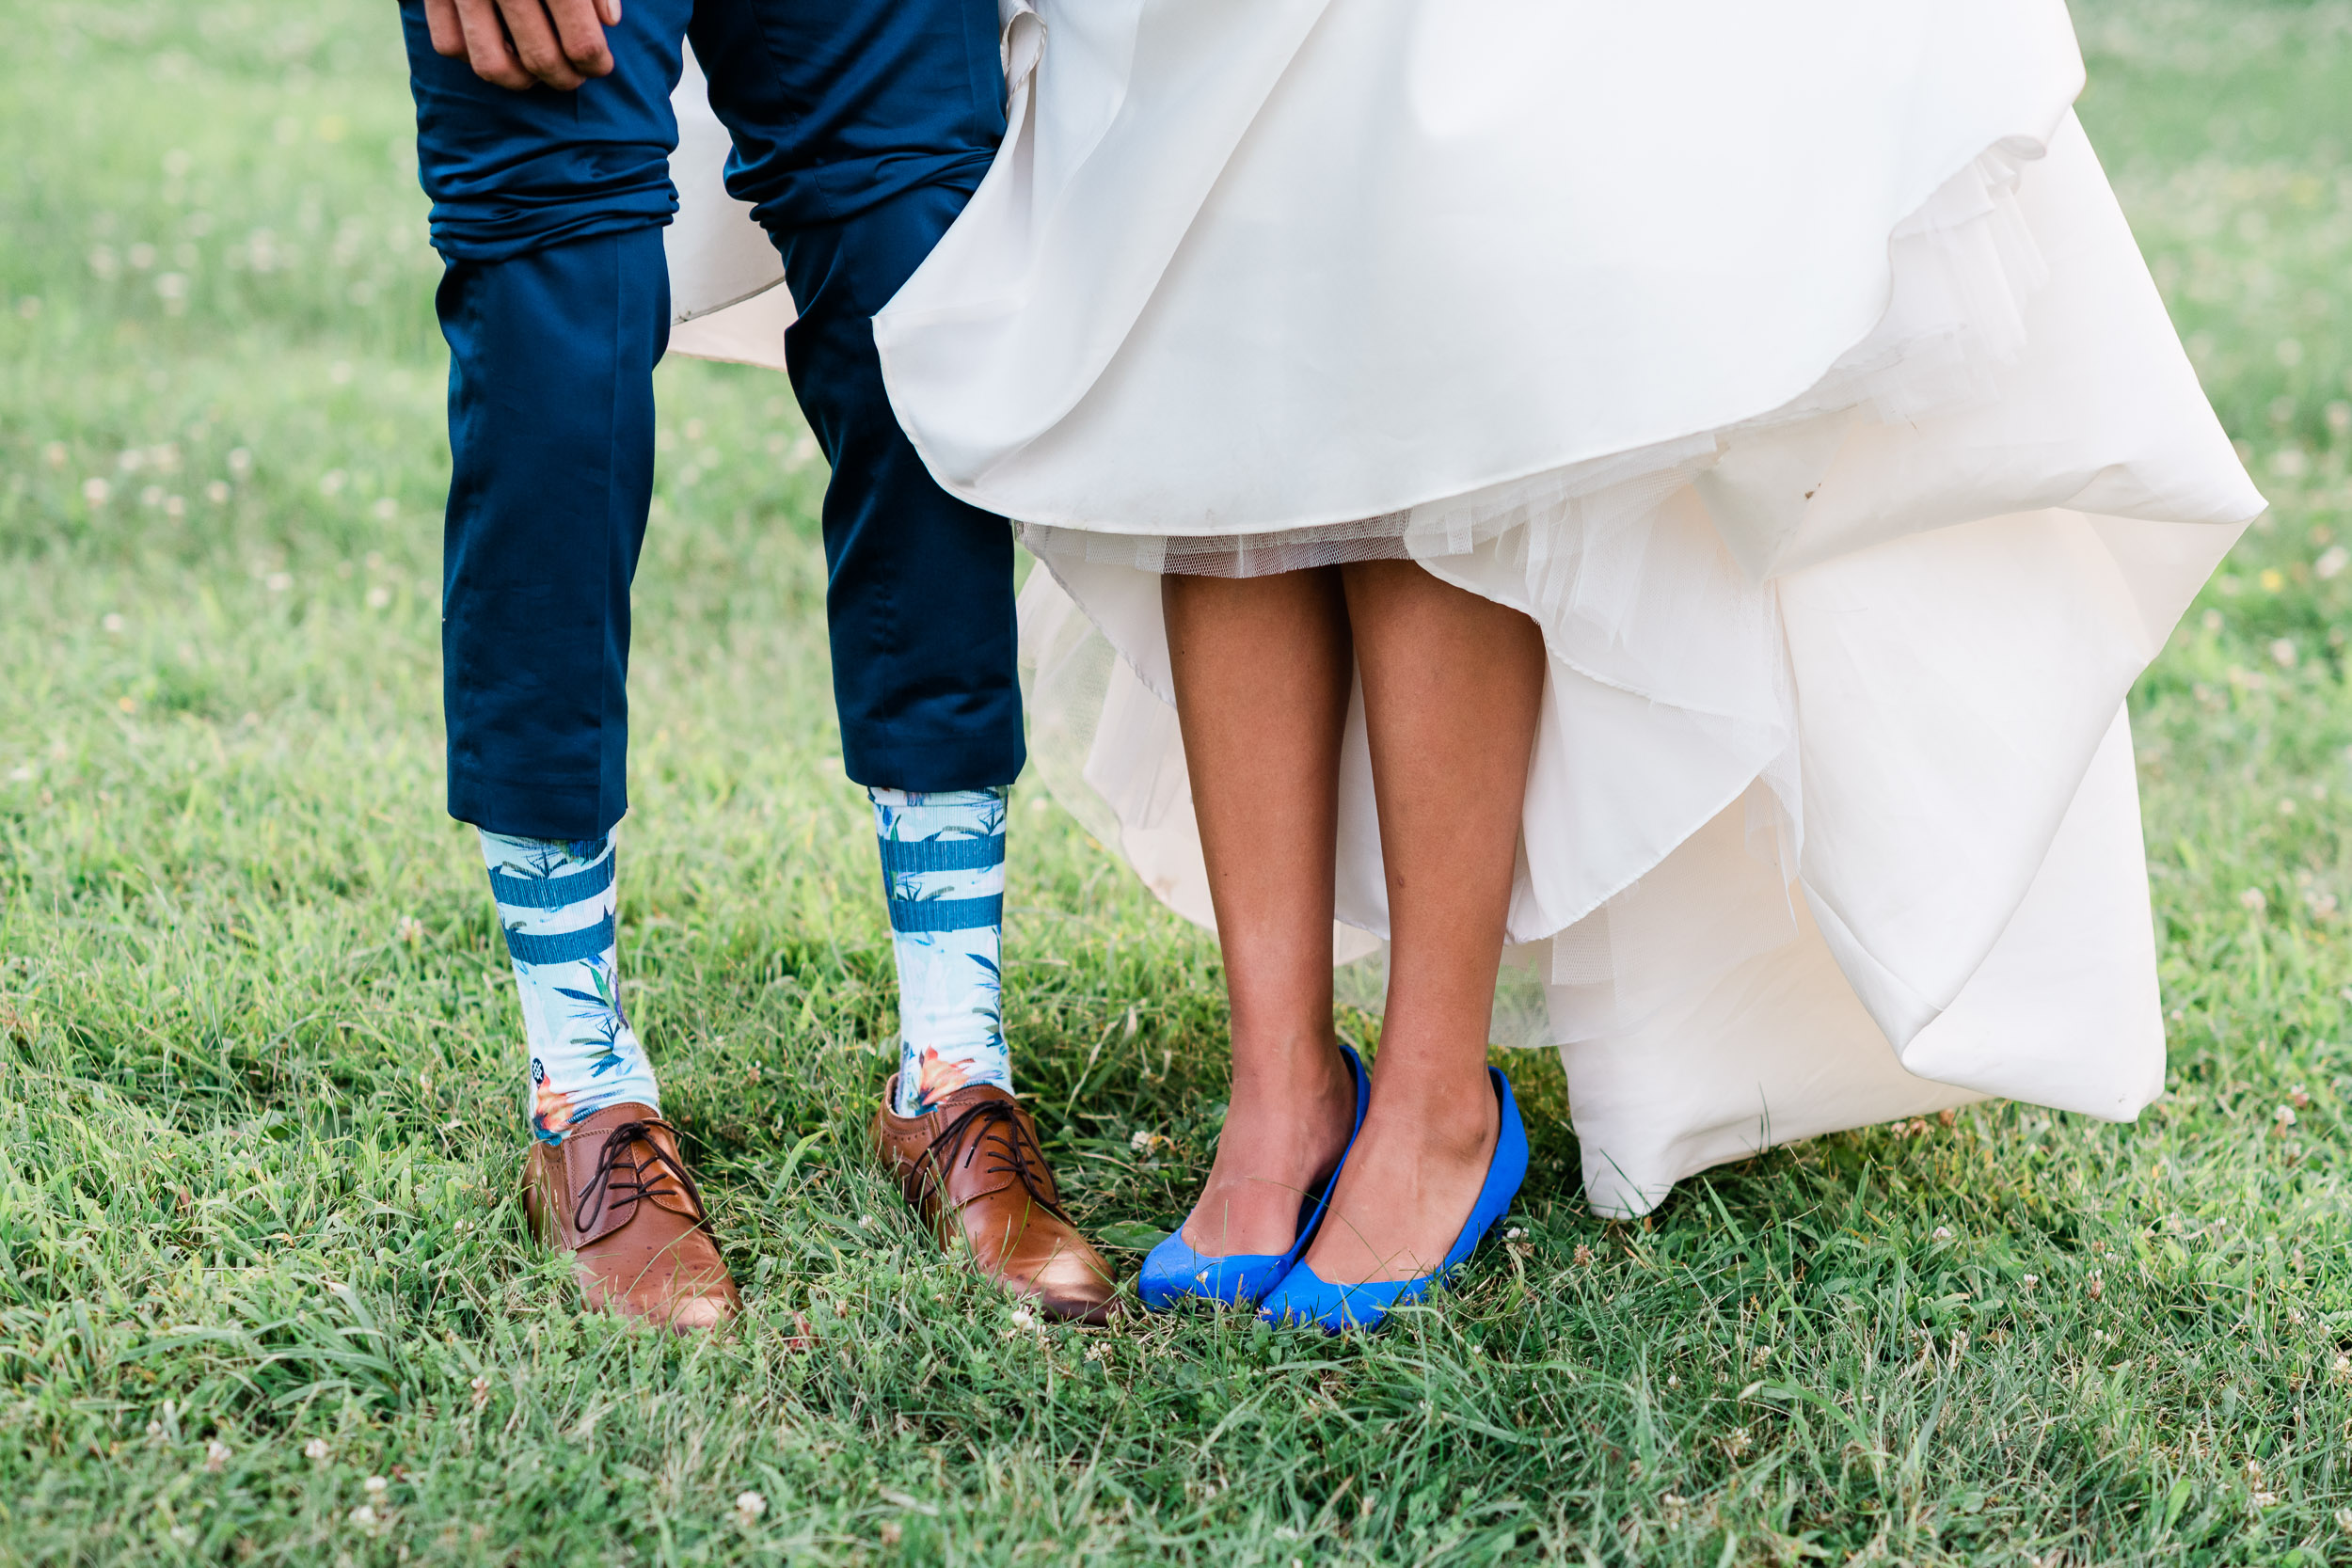 Bride and groom showing their shoes